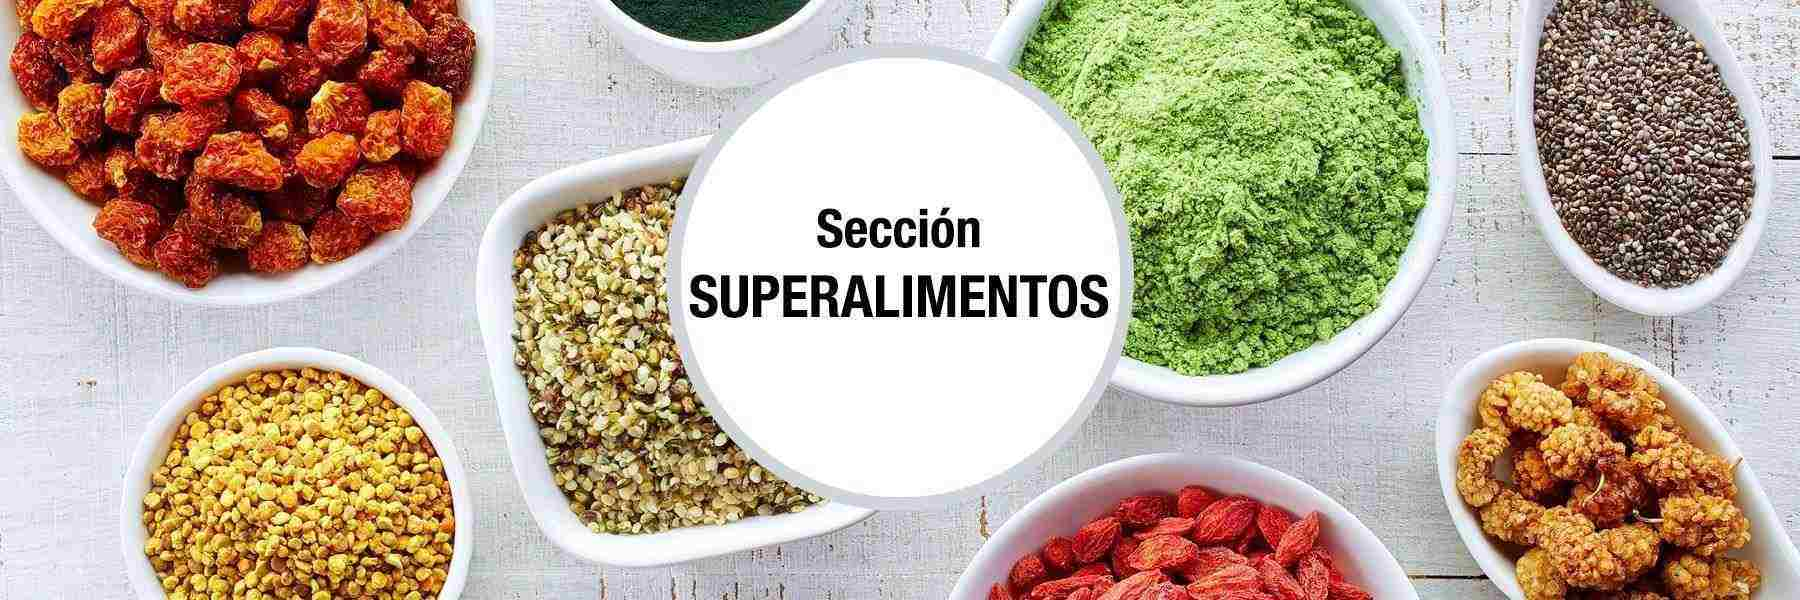 Glorioso - Super alimentos